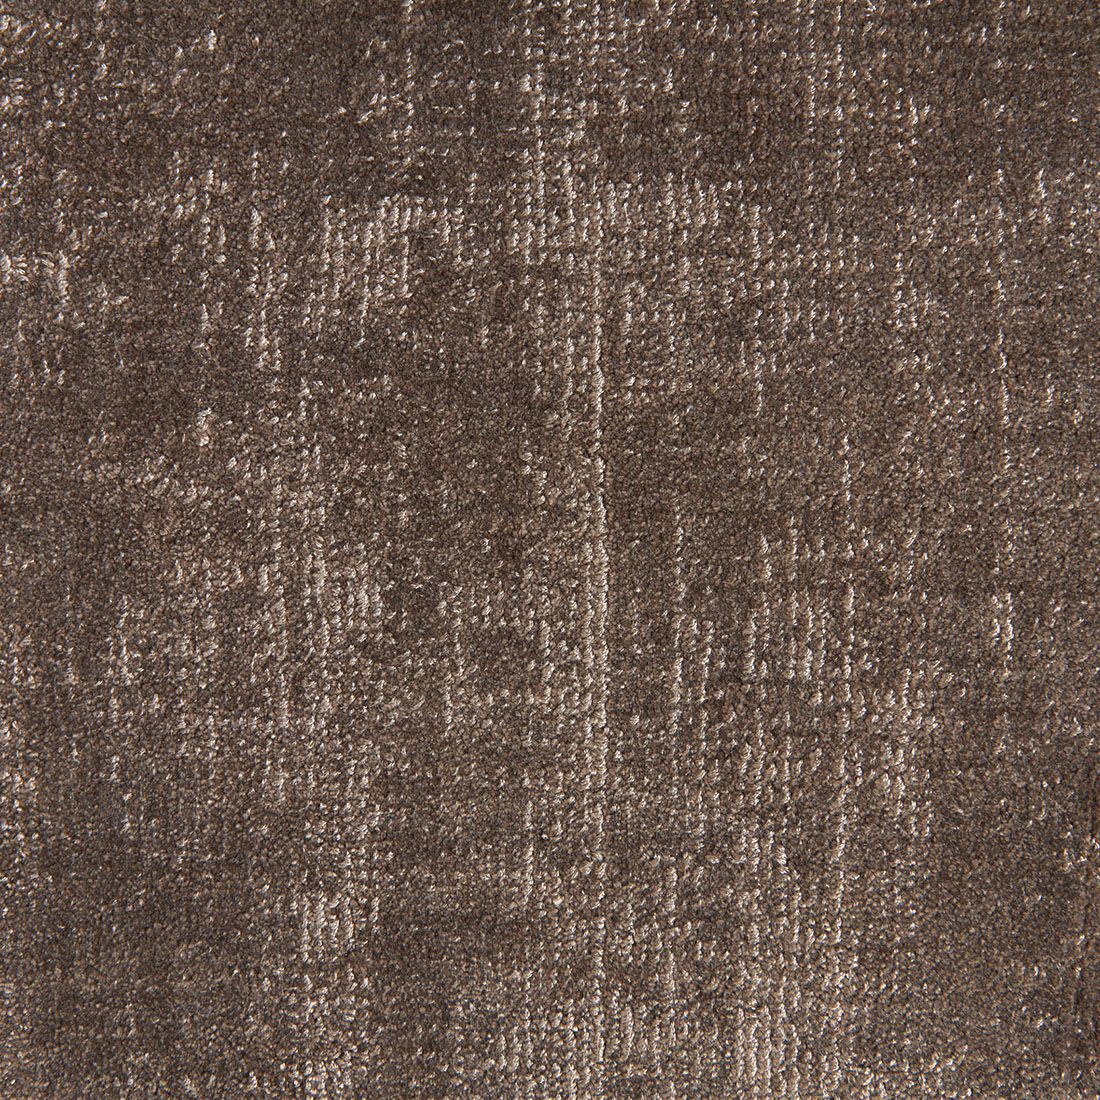 Vloerkleed Brinker Essence Silver Brown | 170 x 230 cm